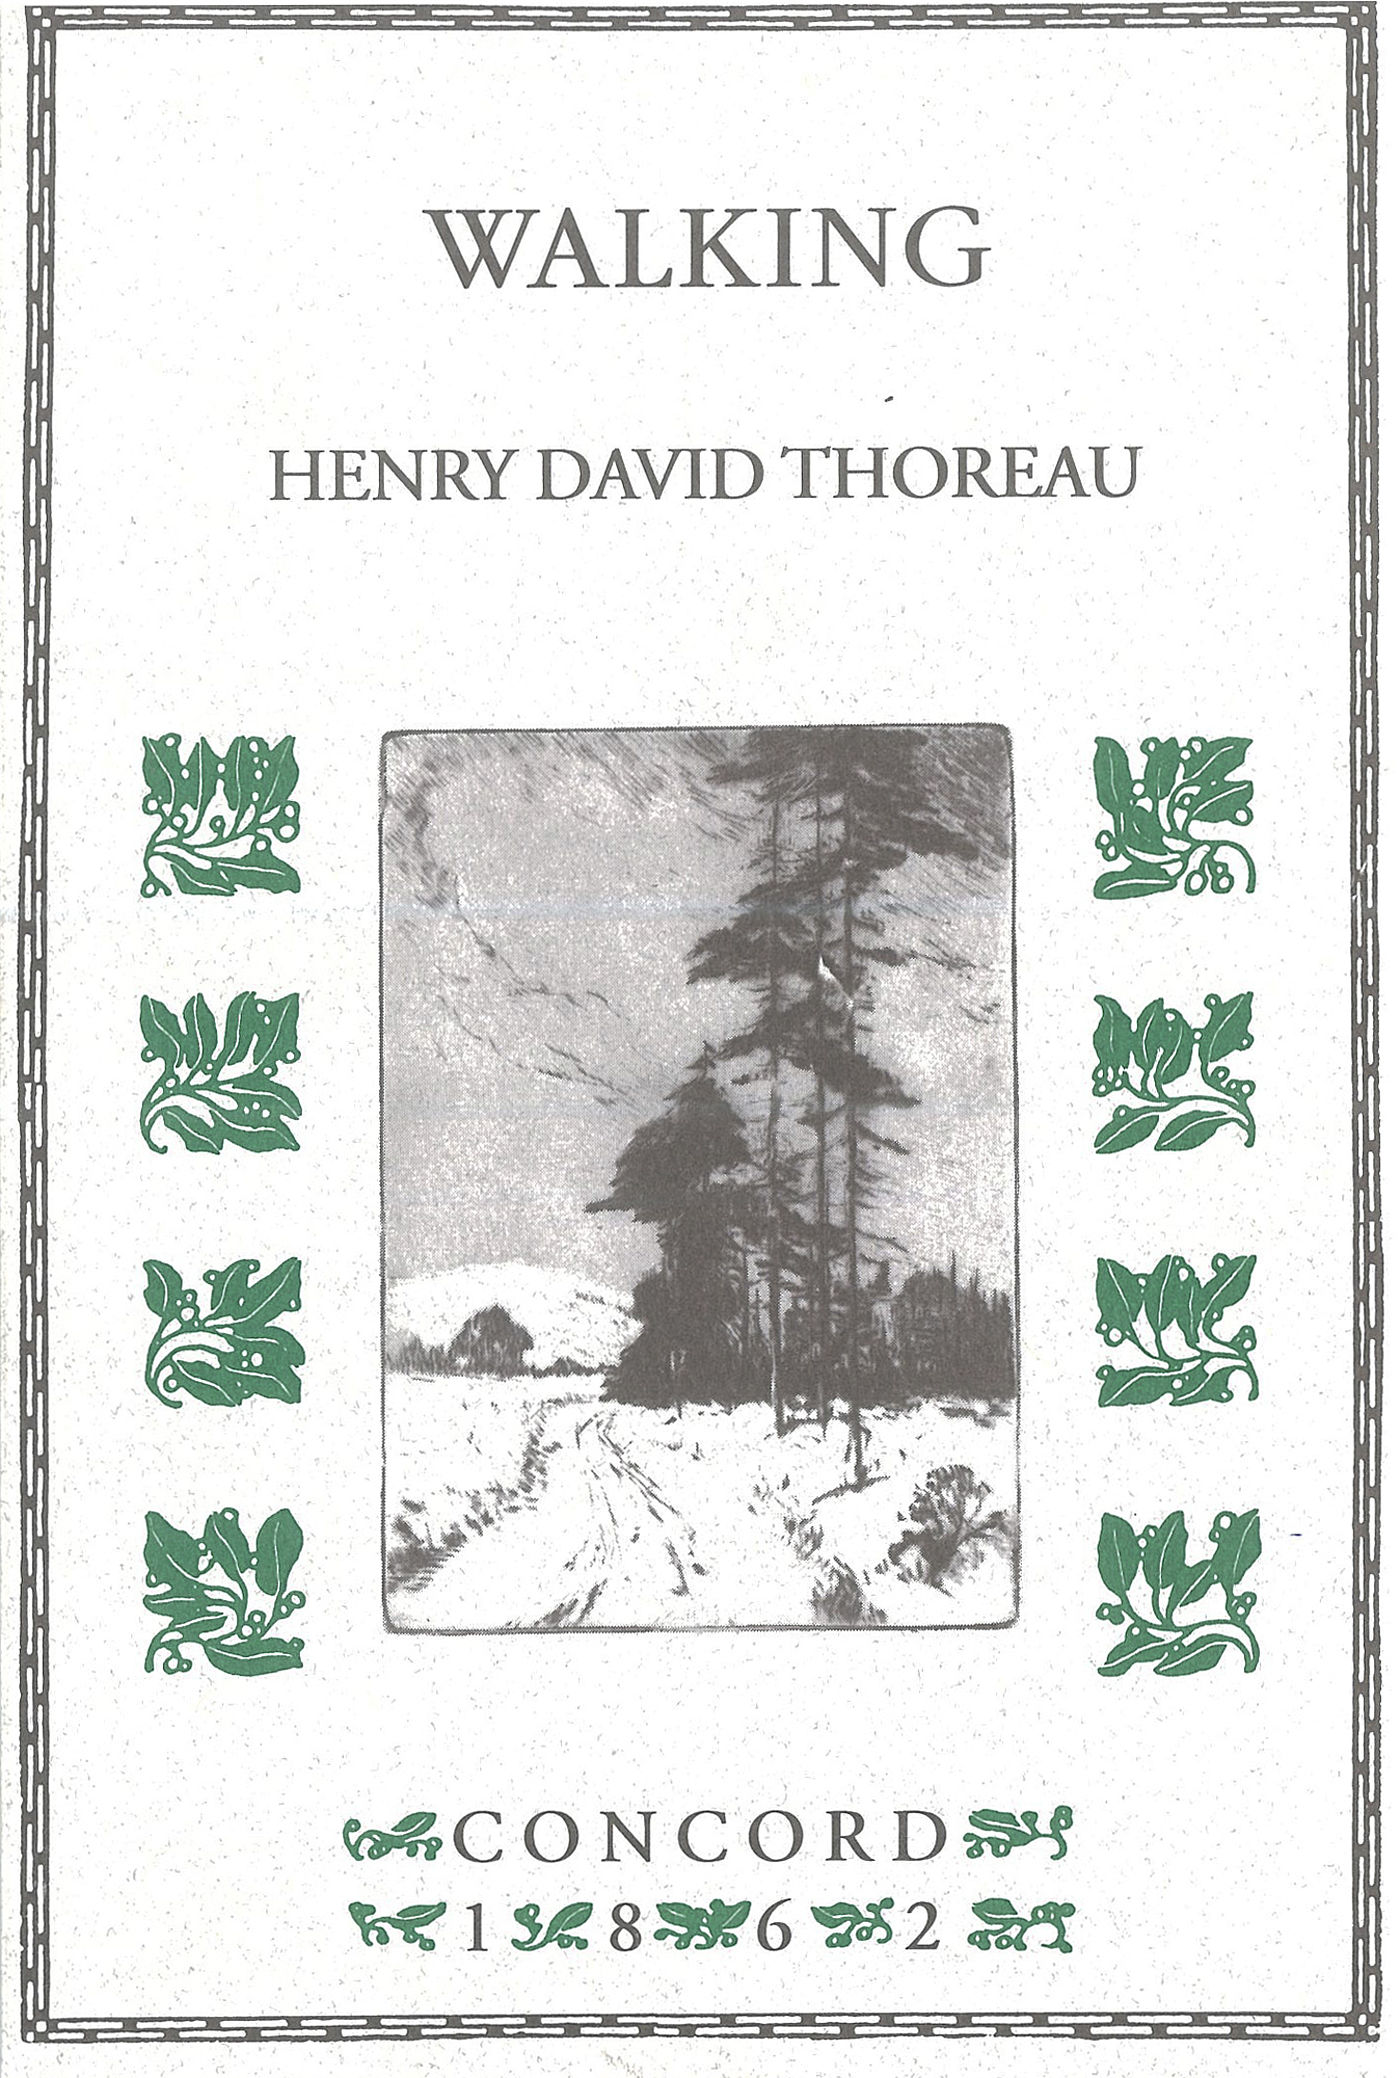 henry david thoreau walking essay Includes thoreau's reform essays, walking essays and his natural history essays thoreau's reputation as a skilled writer of nonfiction prose in the essay form places him among the most influential essayists in the american literary tradition.